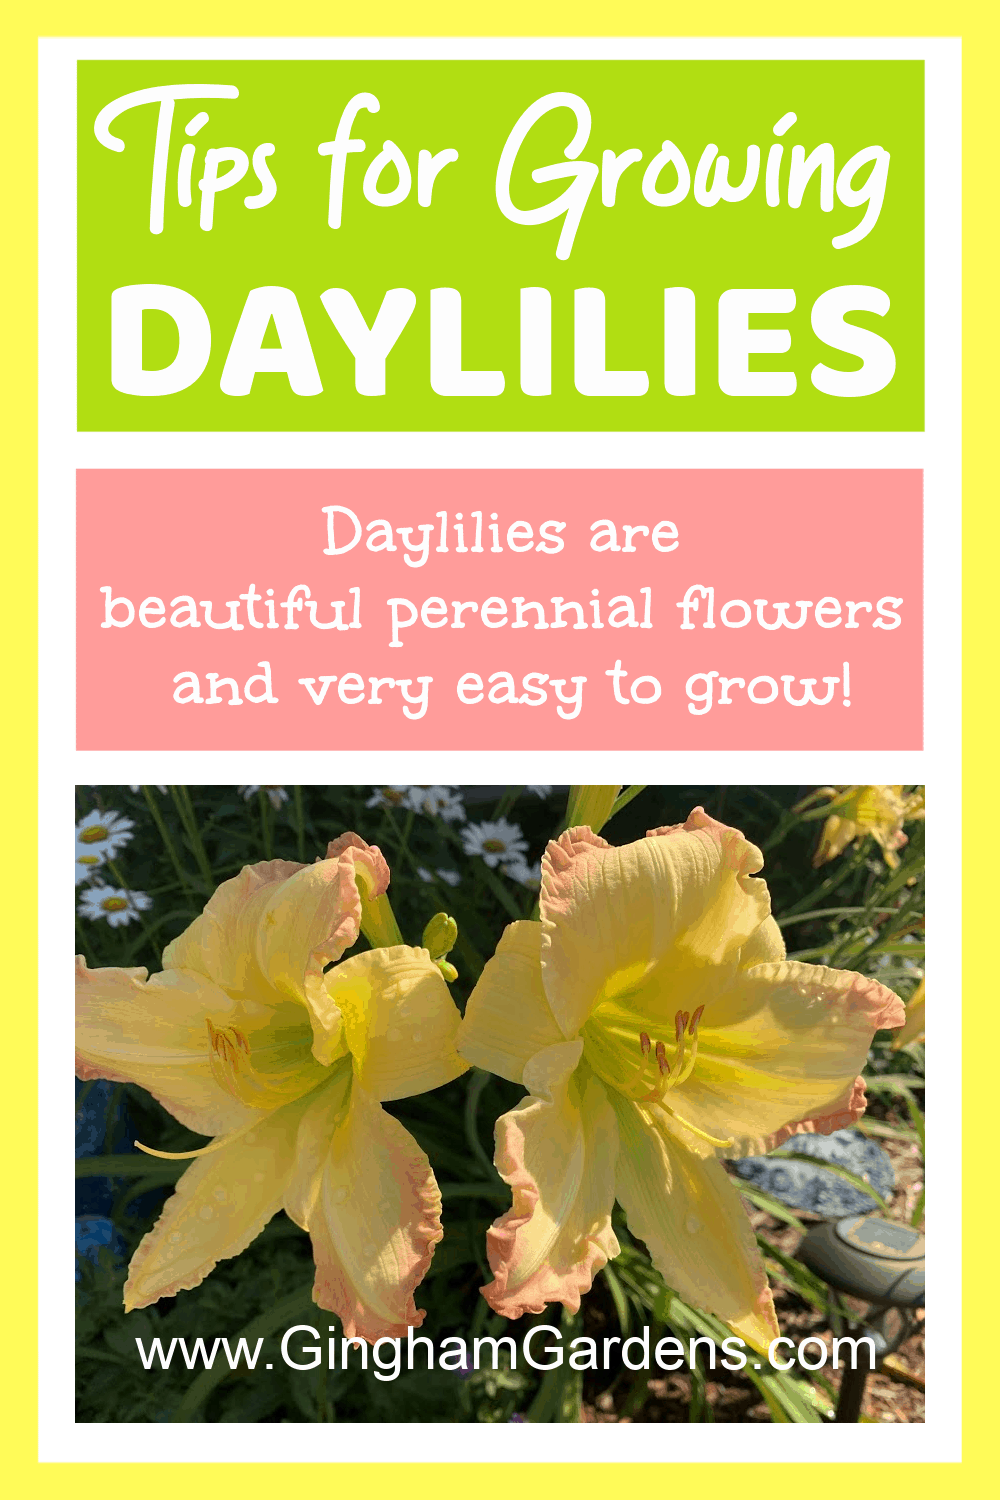 Image of Daylilies - with text overlay Tips for Growing Daylilies